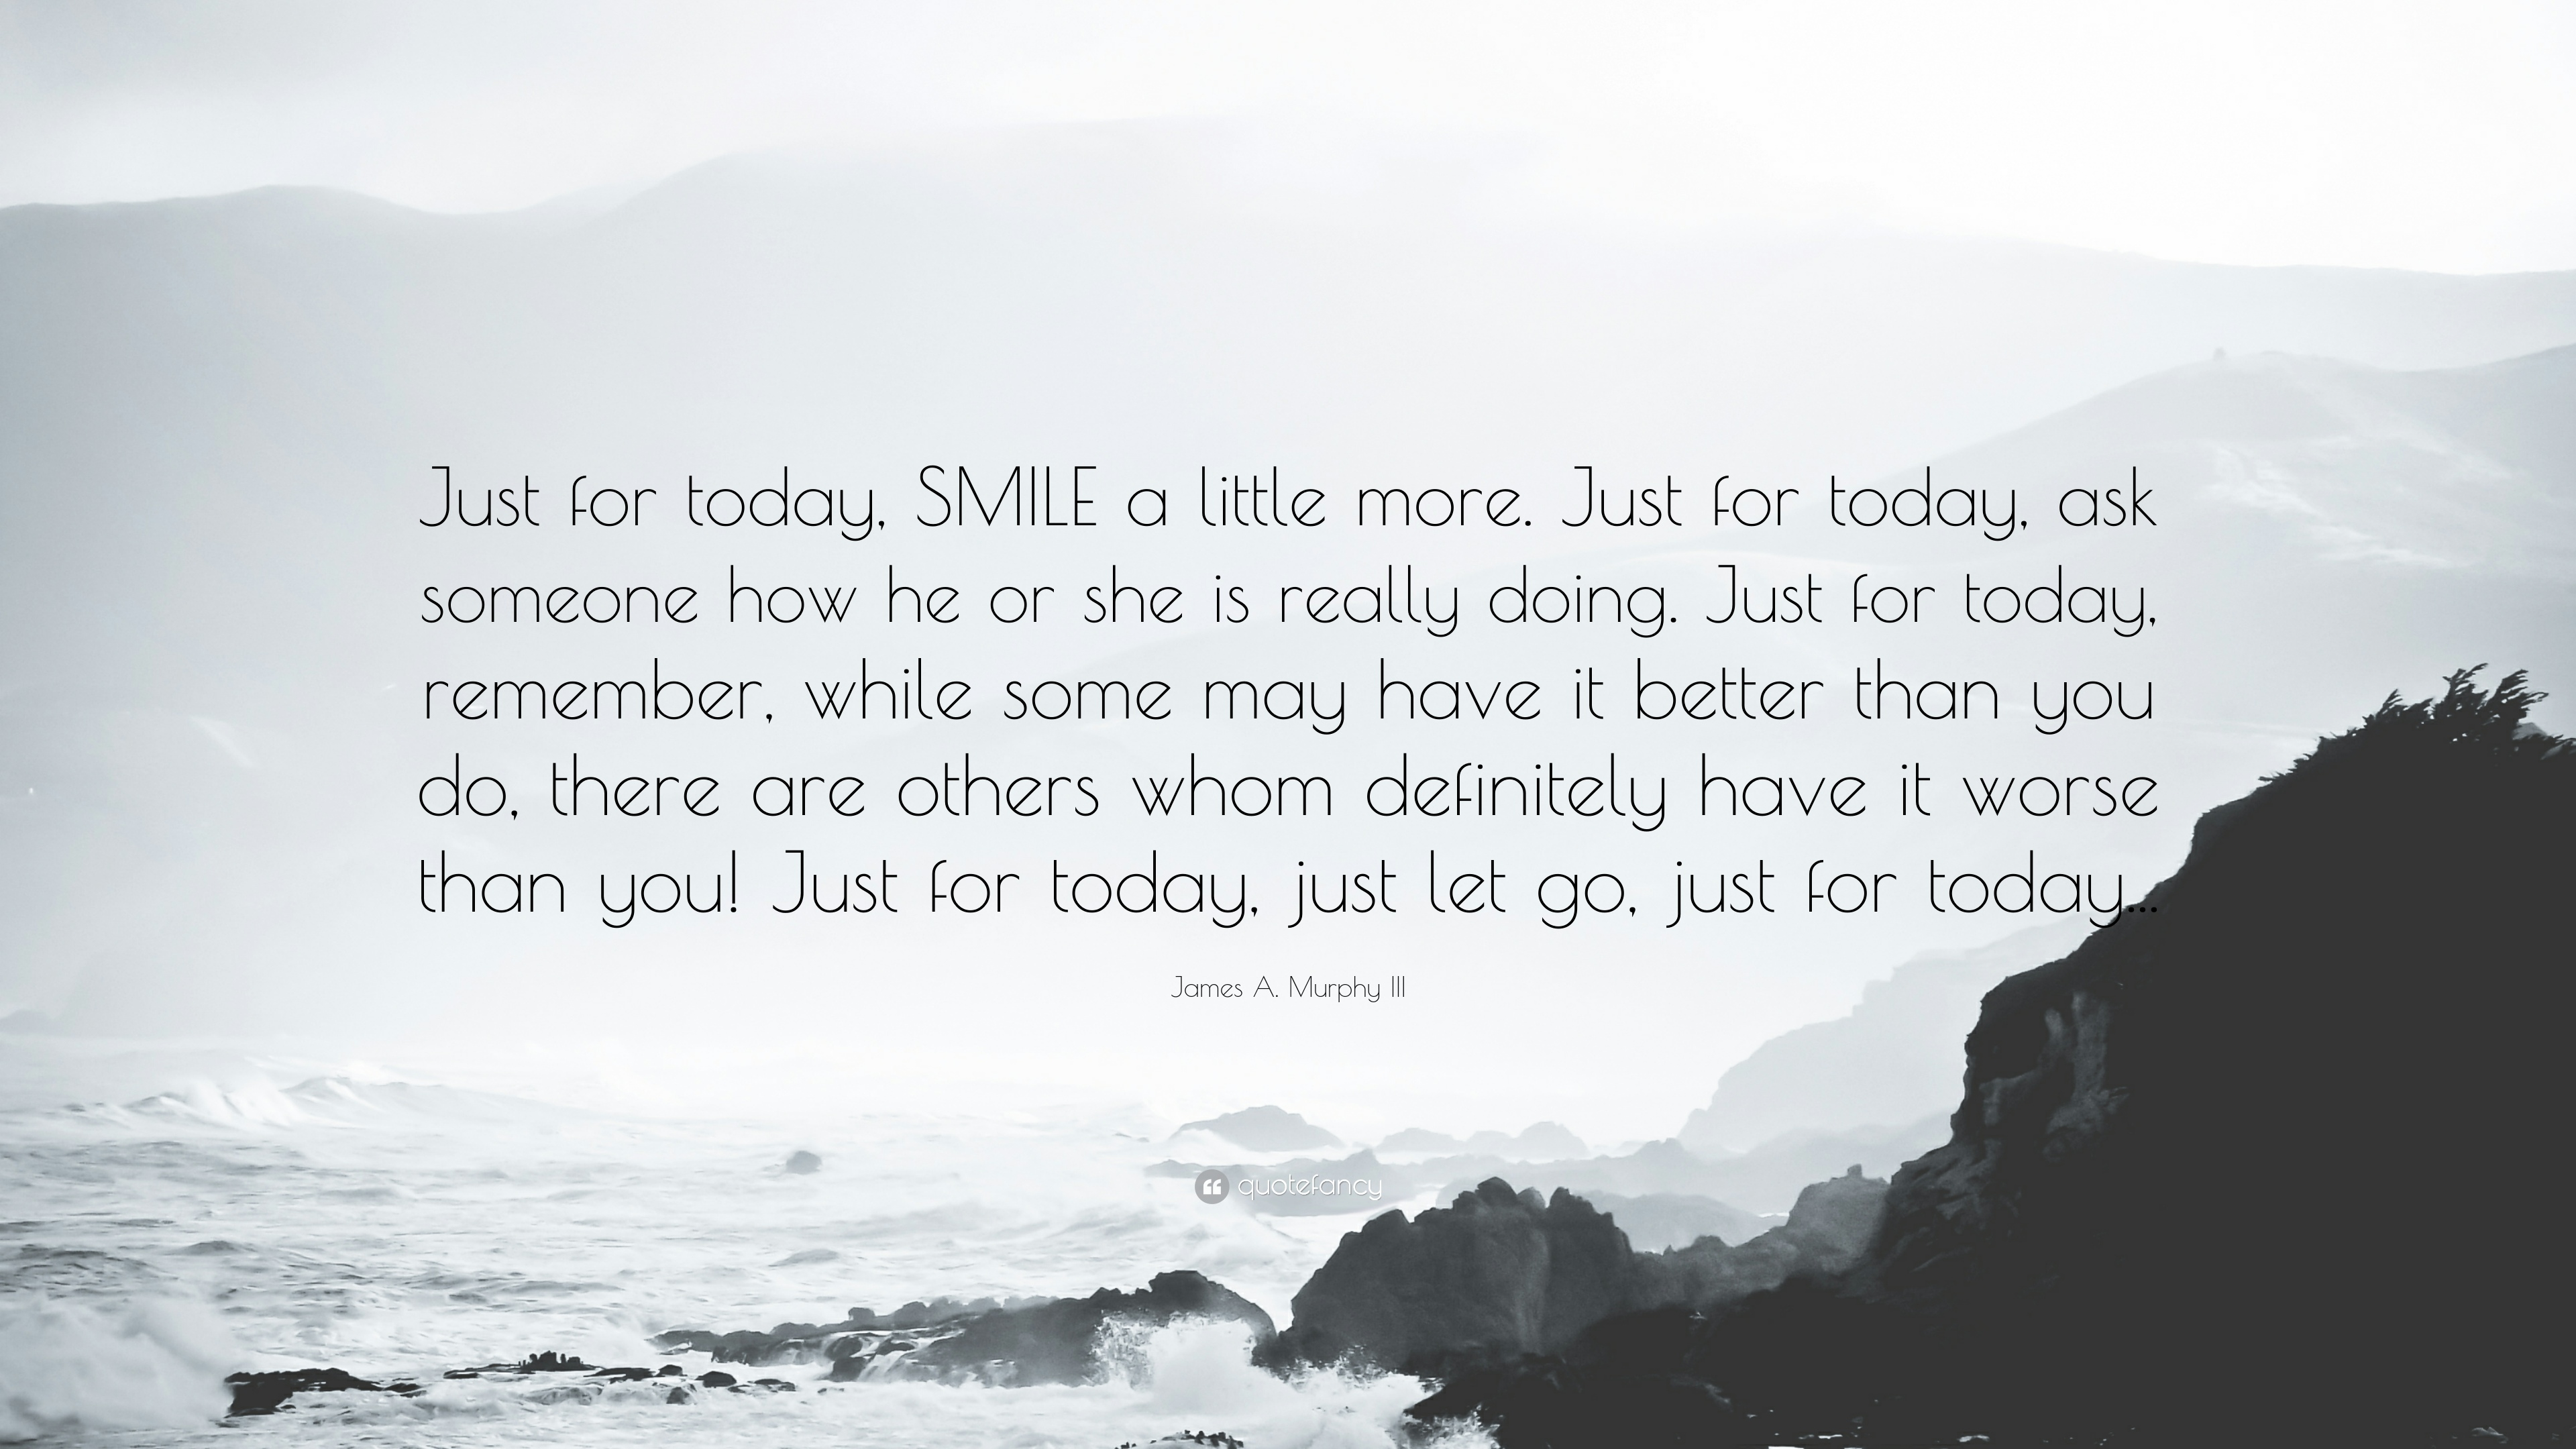 "Just For Today Quotes Classy James Amurphy Iii Quote ""Just For Today Smile A Little More"